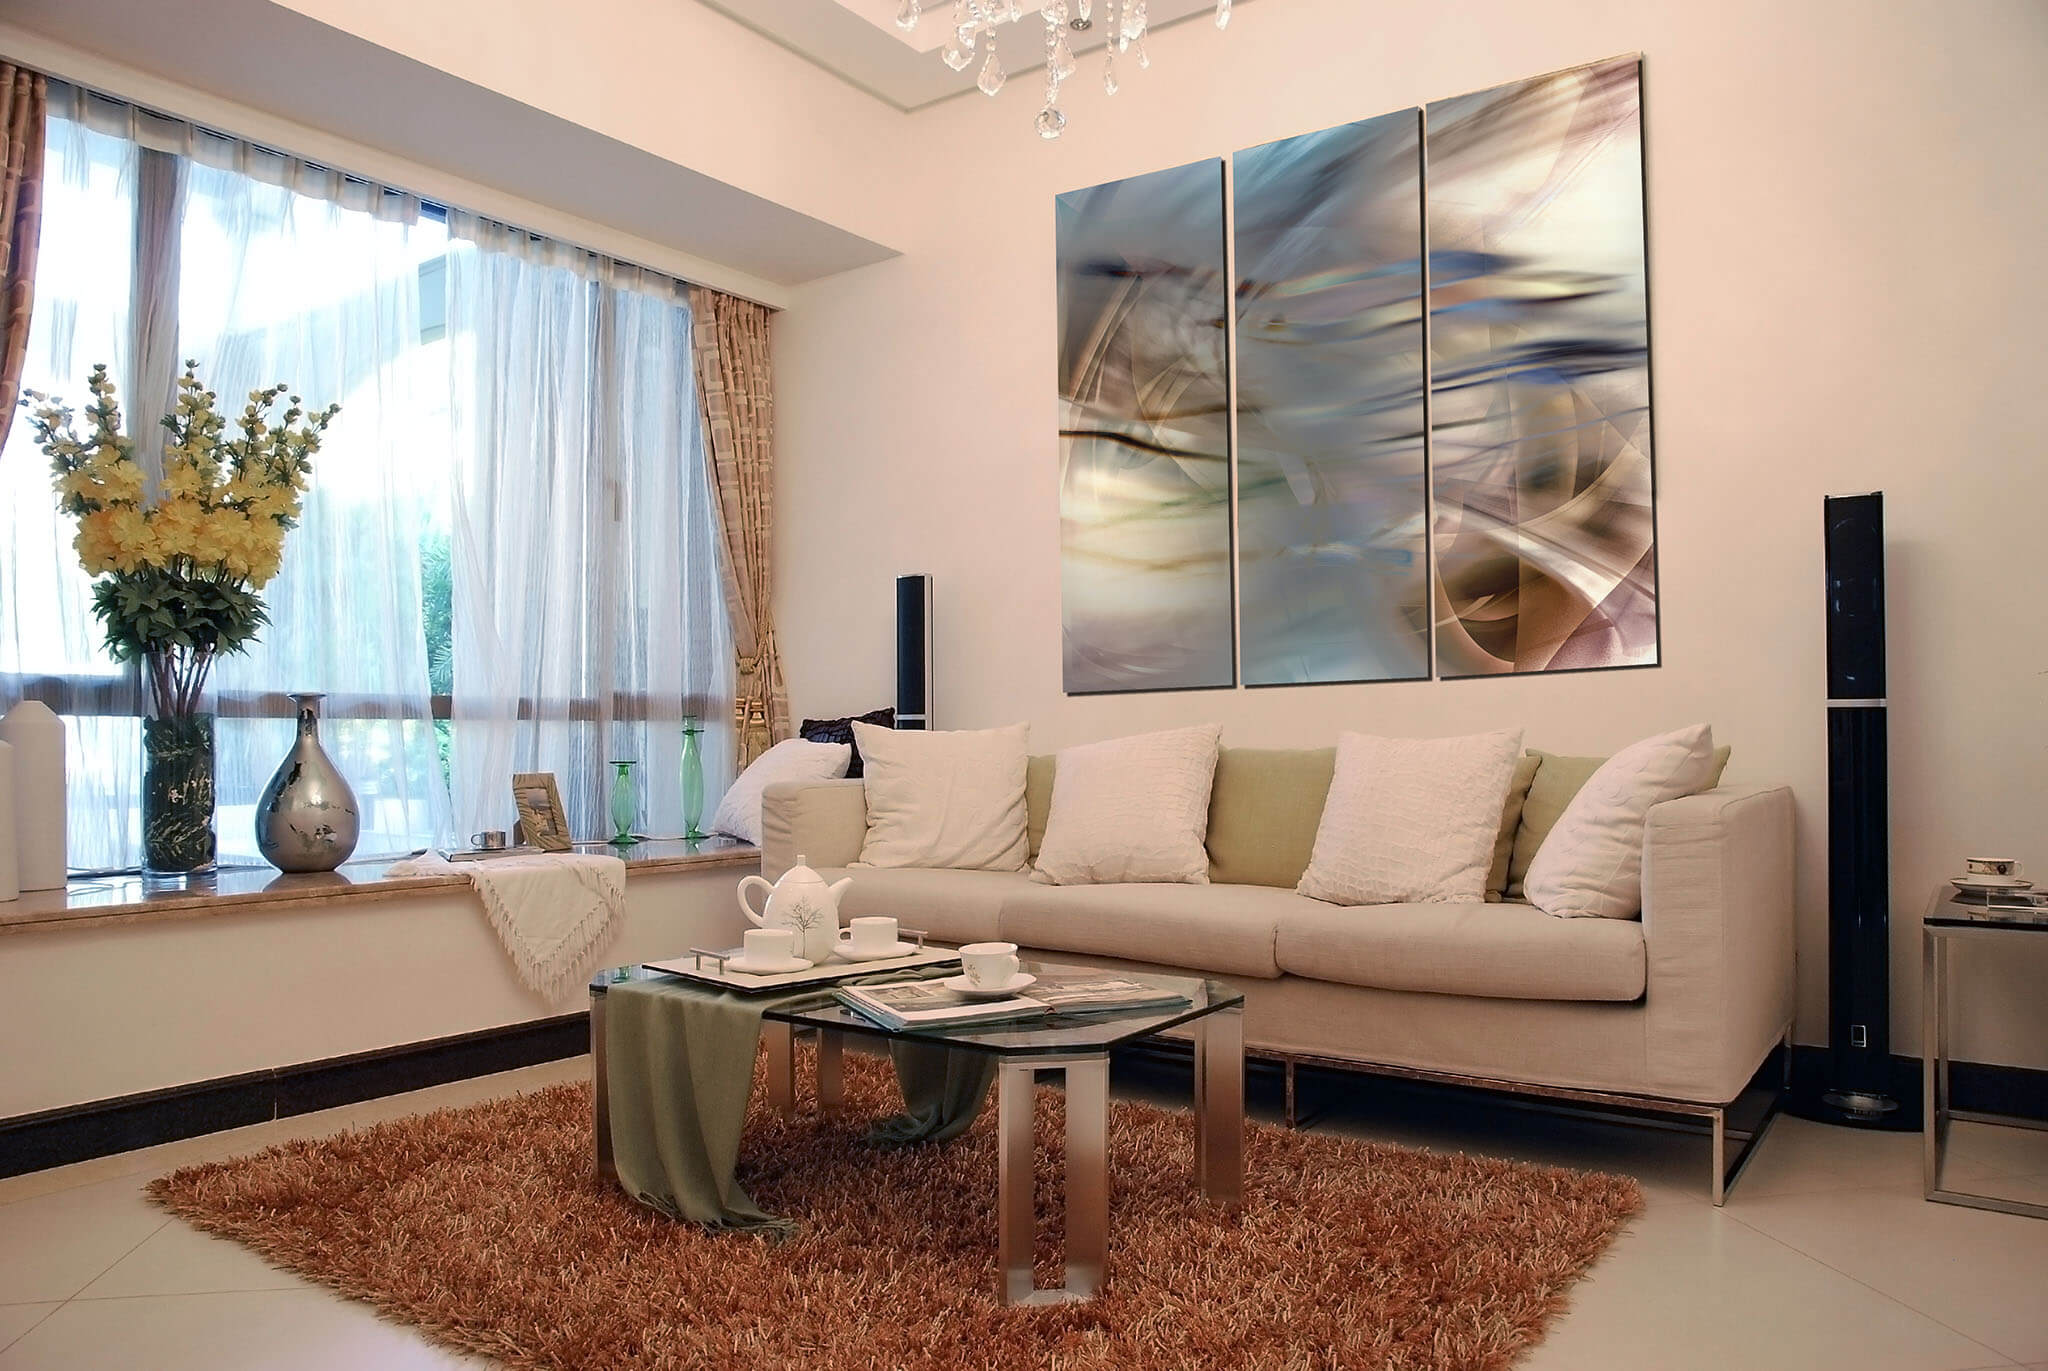 ideas for living room wall art green and brown rugs franklin arts 3 panel